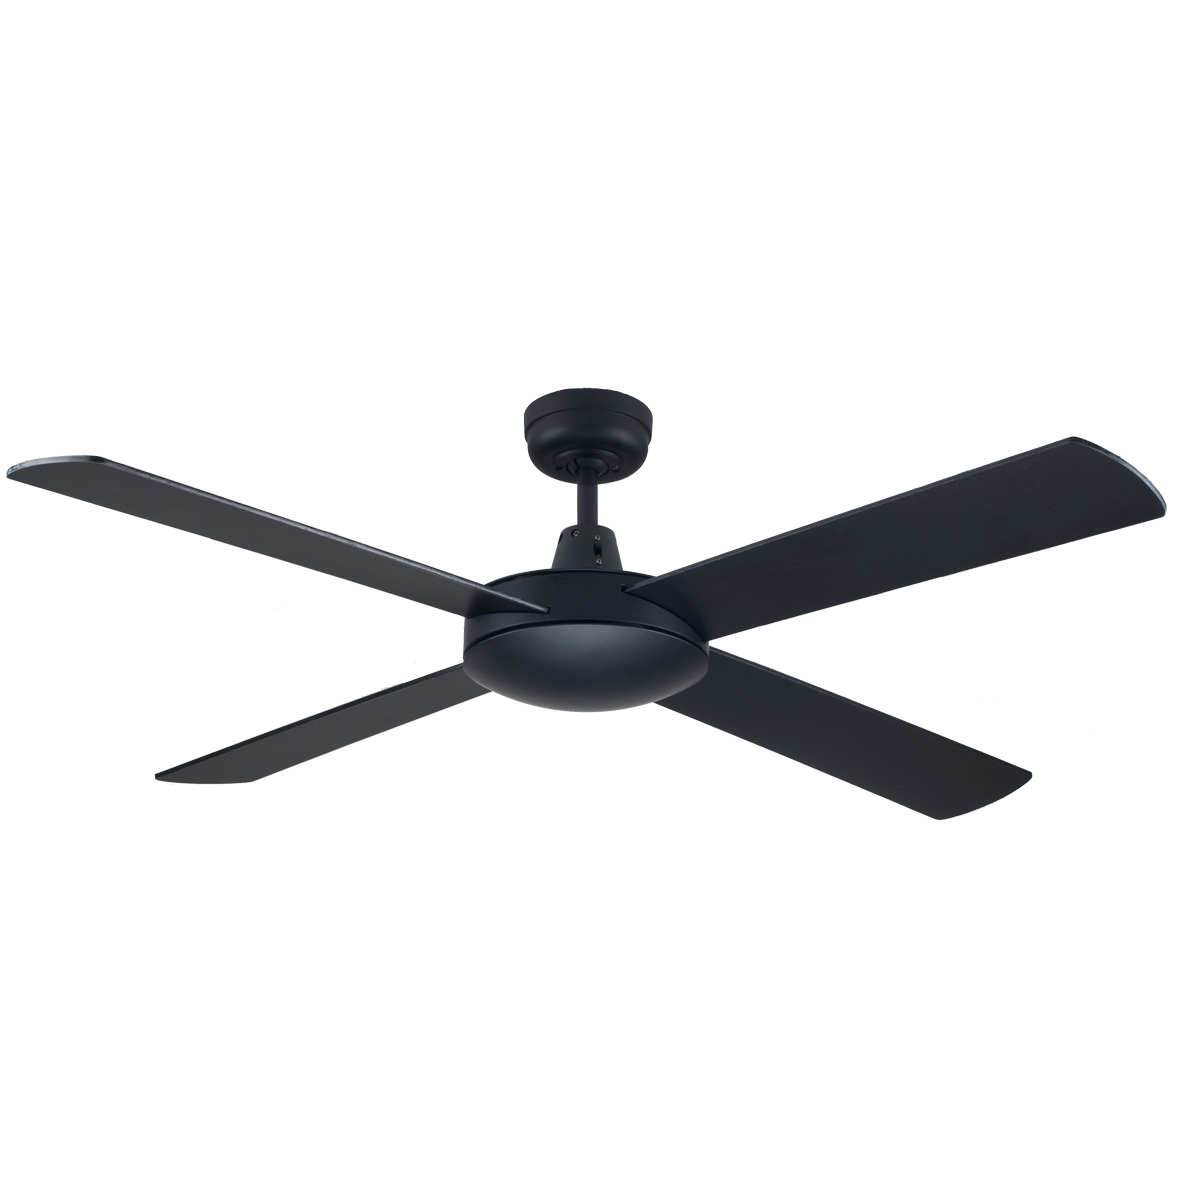 Genesis 52 Inch Ceiling Fan Black Ceiling Fan Bargains